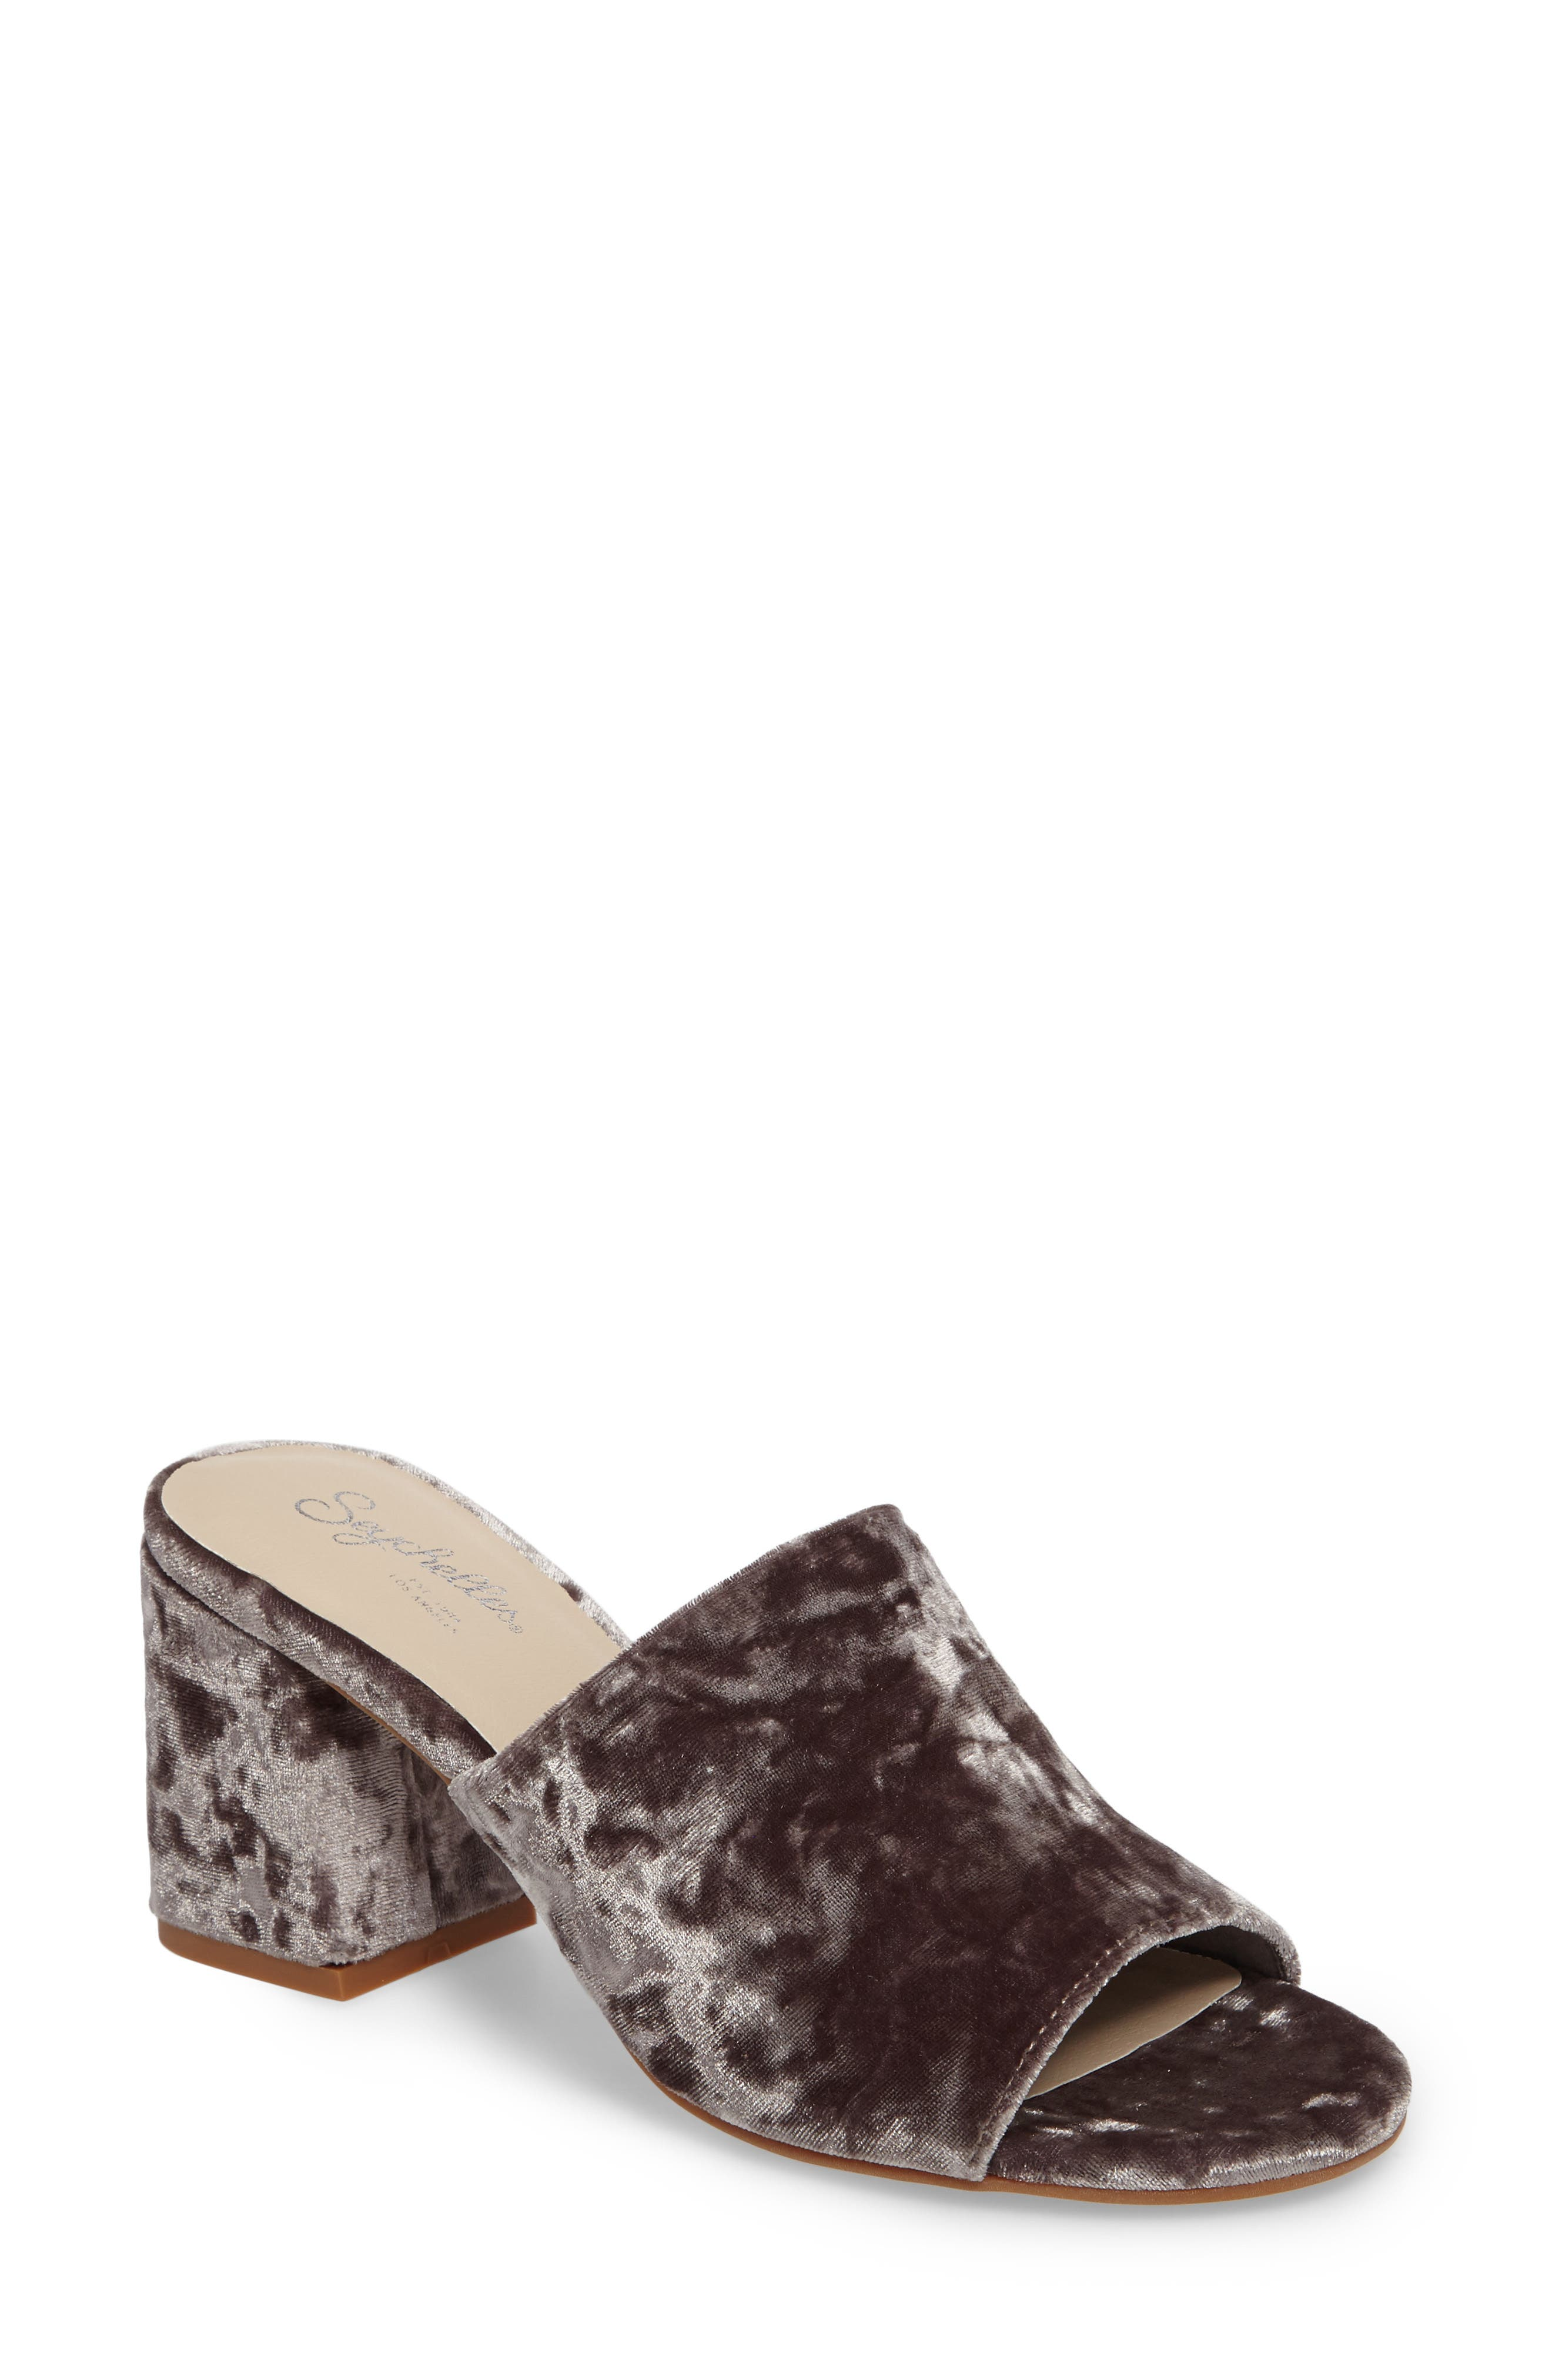 Commute Flared Heel Slide Sandal,                             Main thumbnail 1, color,                             Grey Velvet Fabric